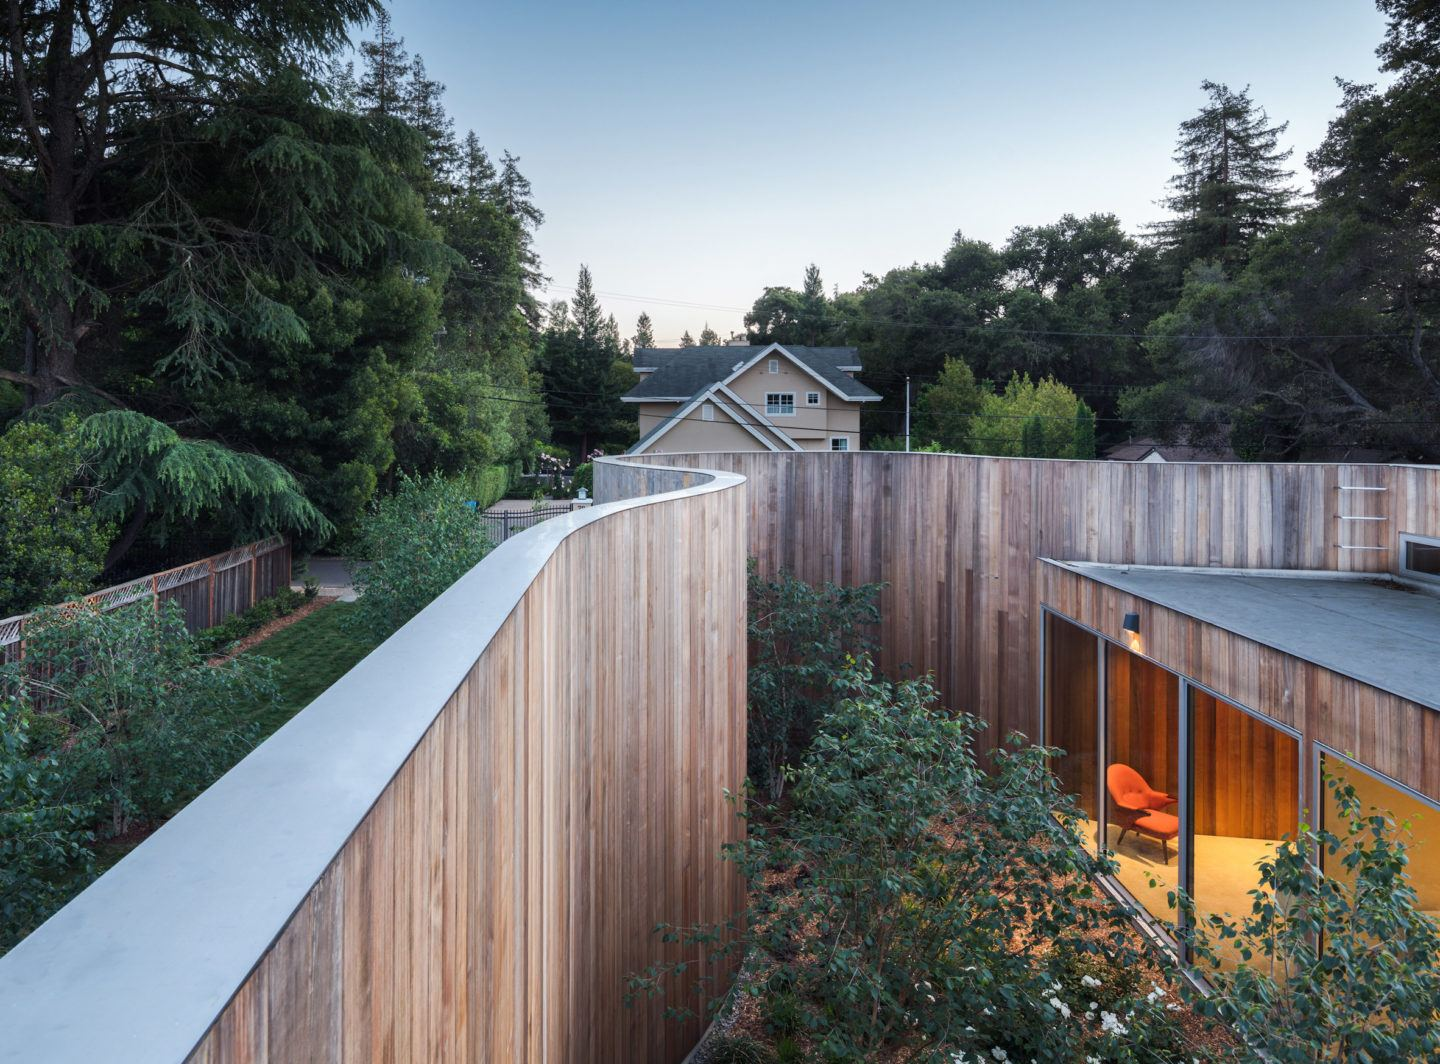 IGNANT-Architecture-Craig-Steely-Architecture-Roofless-House-15